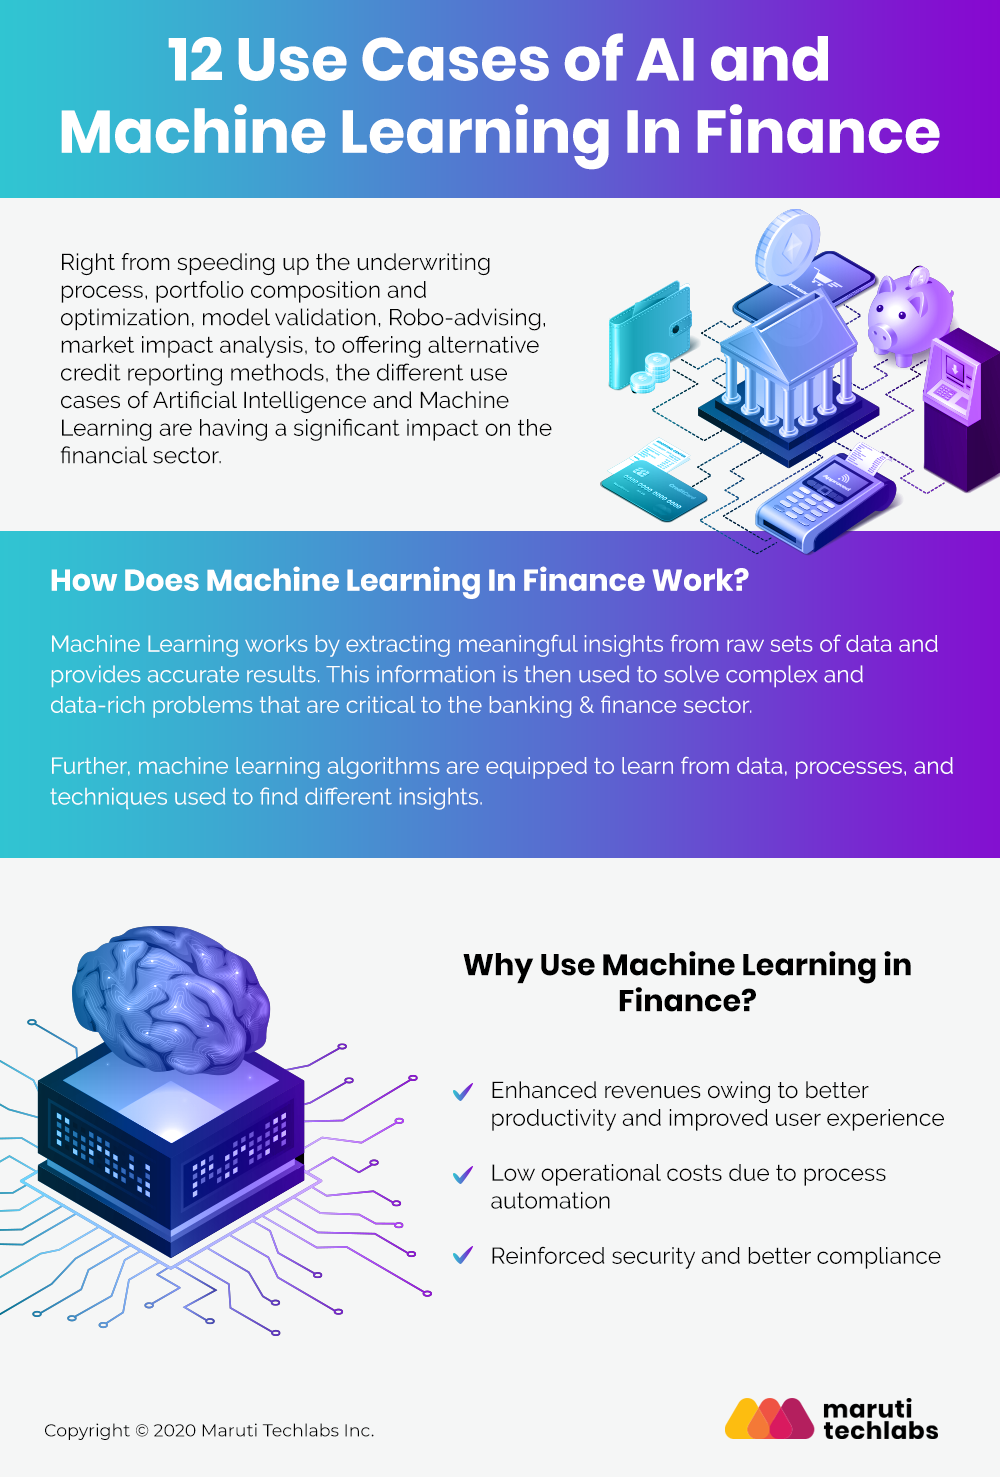 ai-and-machine-learning-in-finance